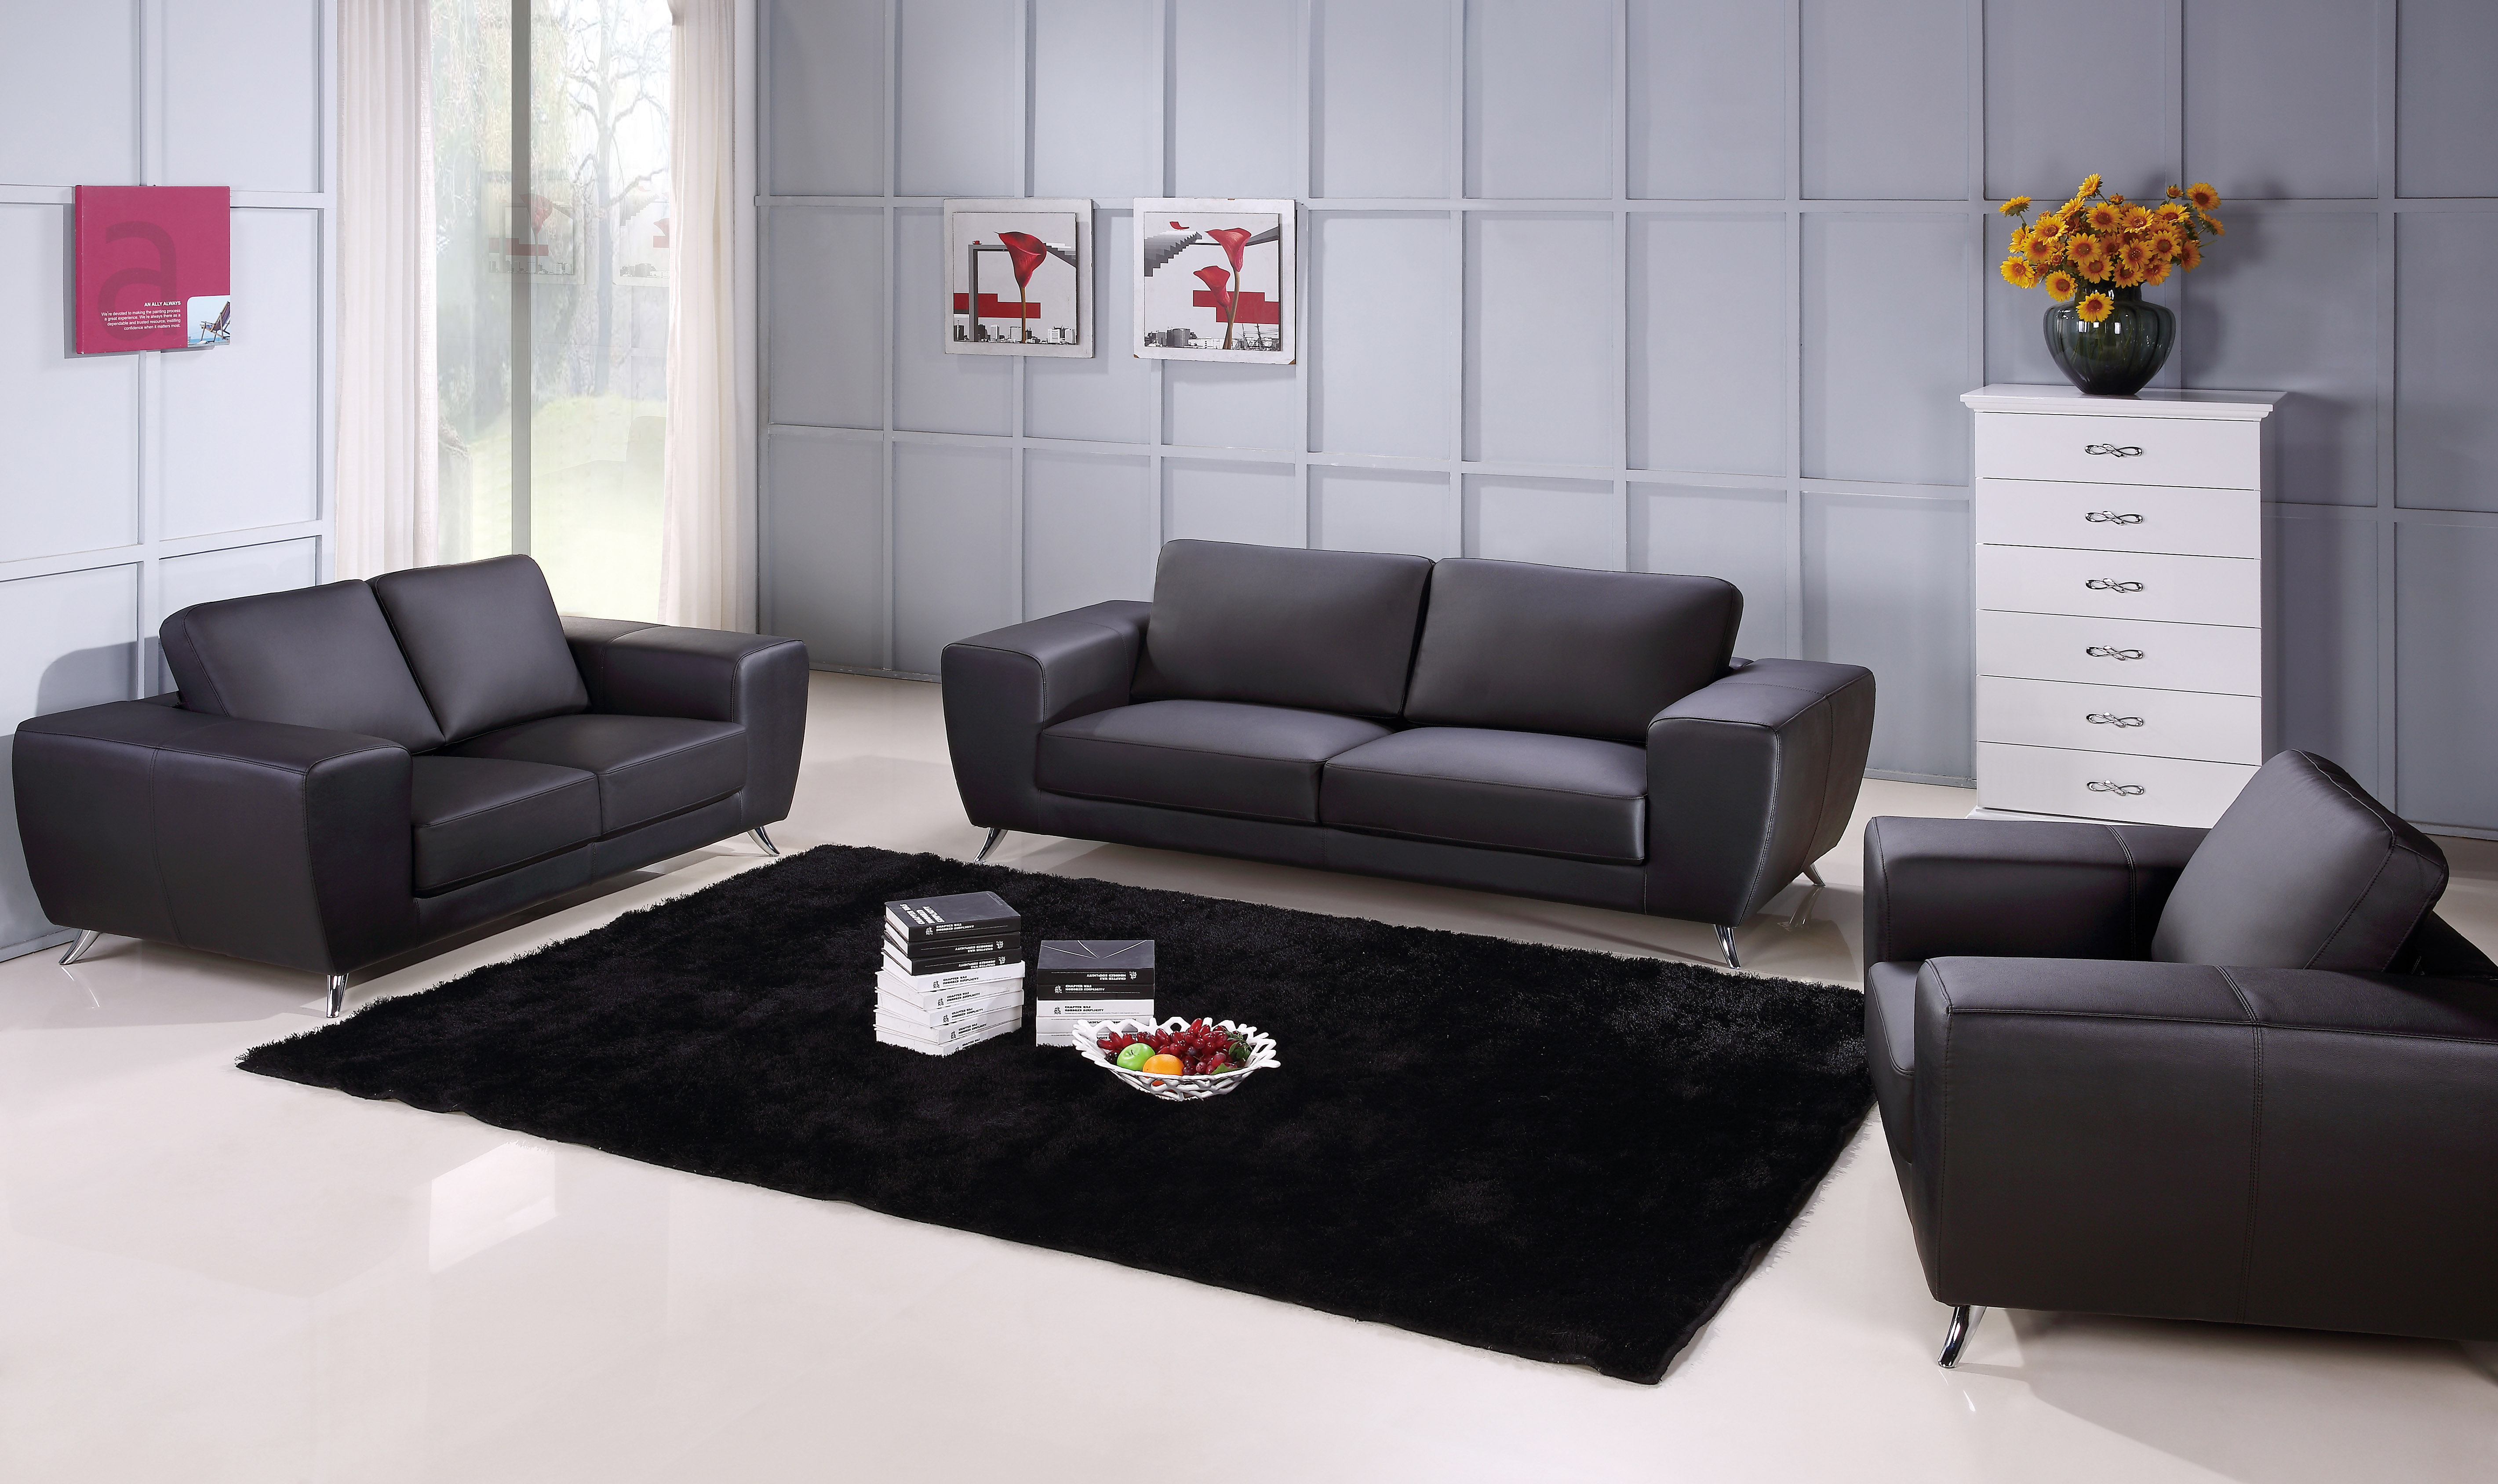 Unique Sofa Set Upholstered in Black Leather